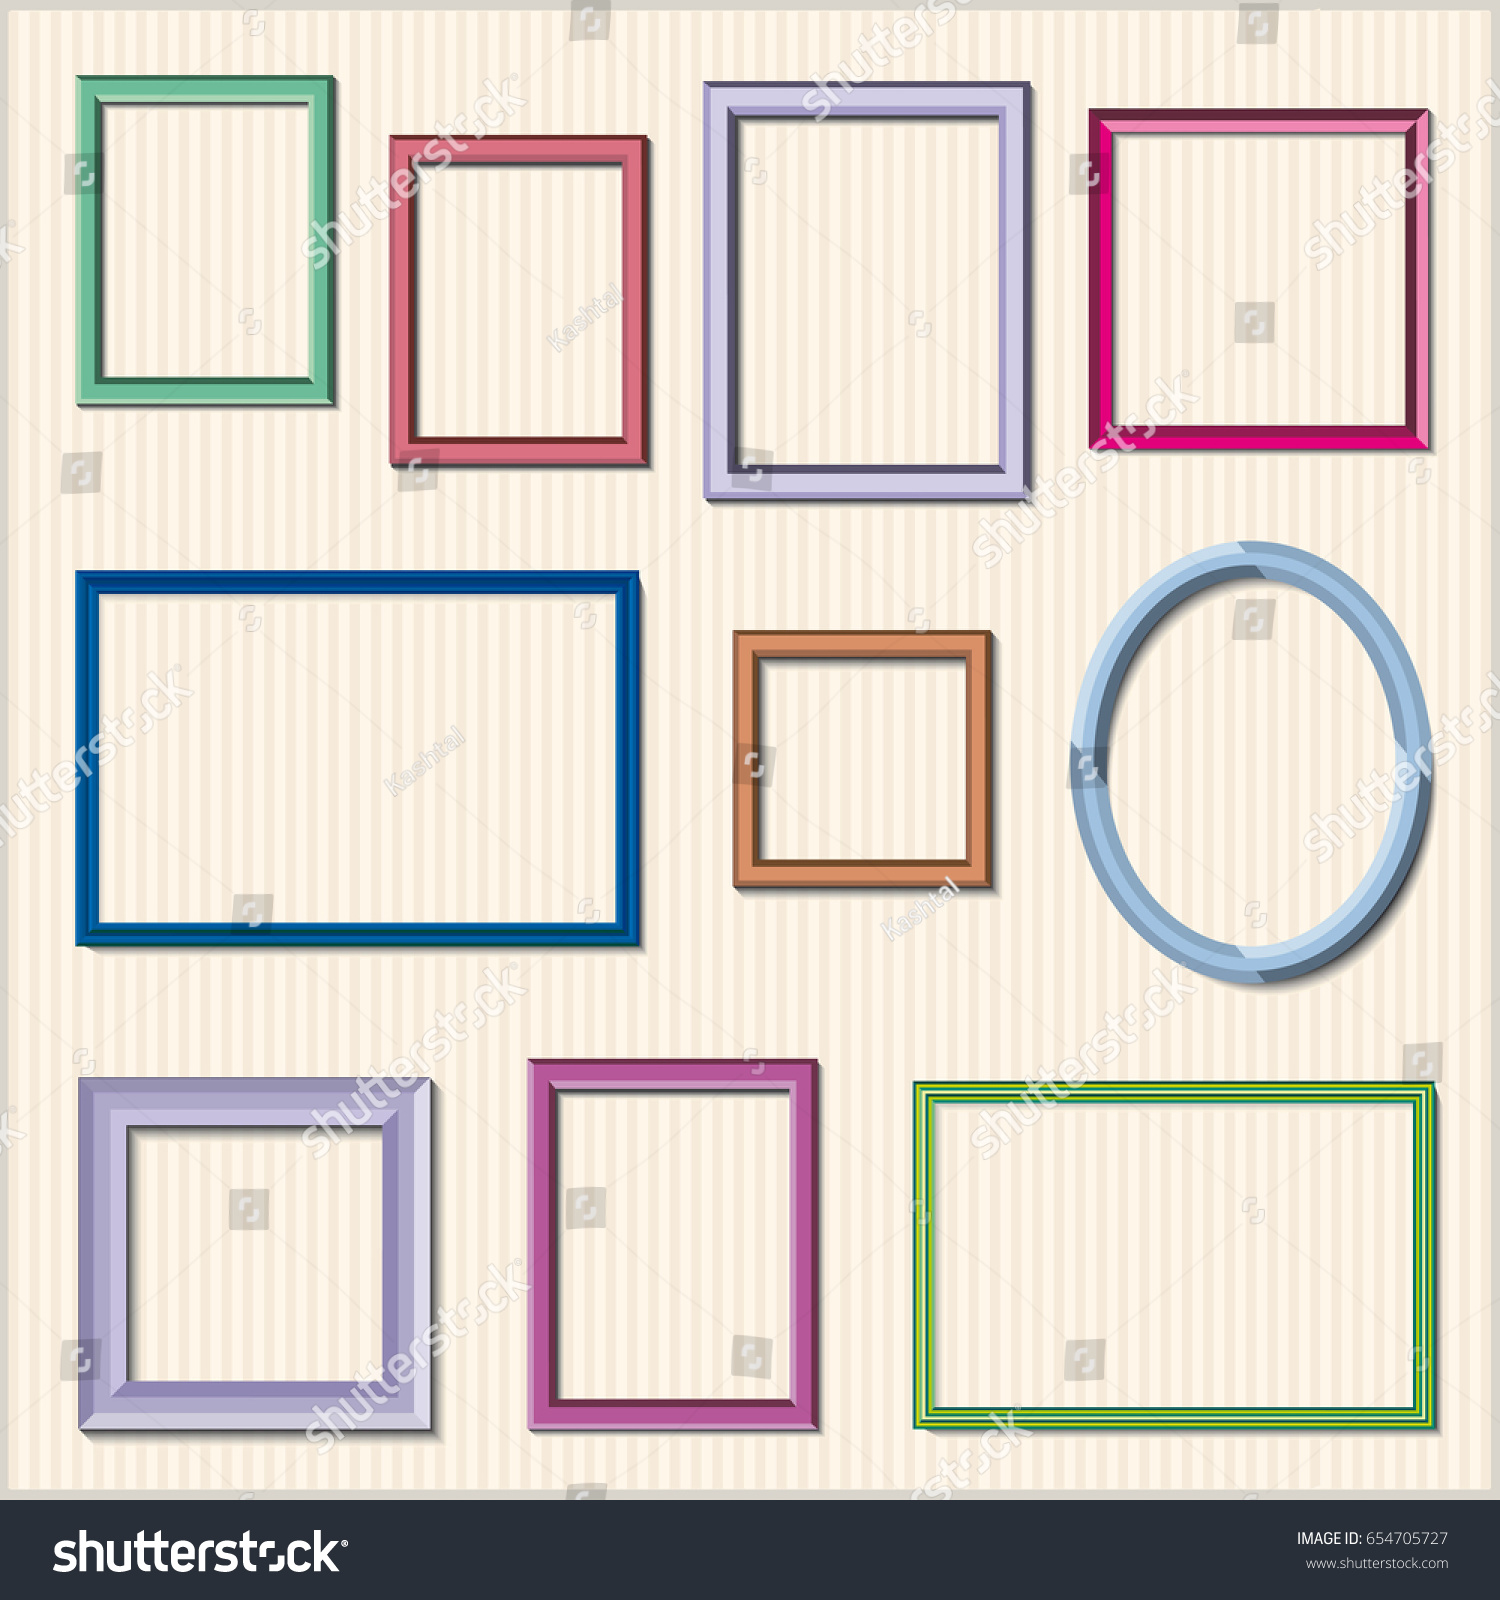 Set Colorful Wooden Frames Wooden Square Stock Vector 654705727 ...